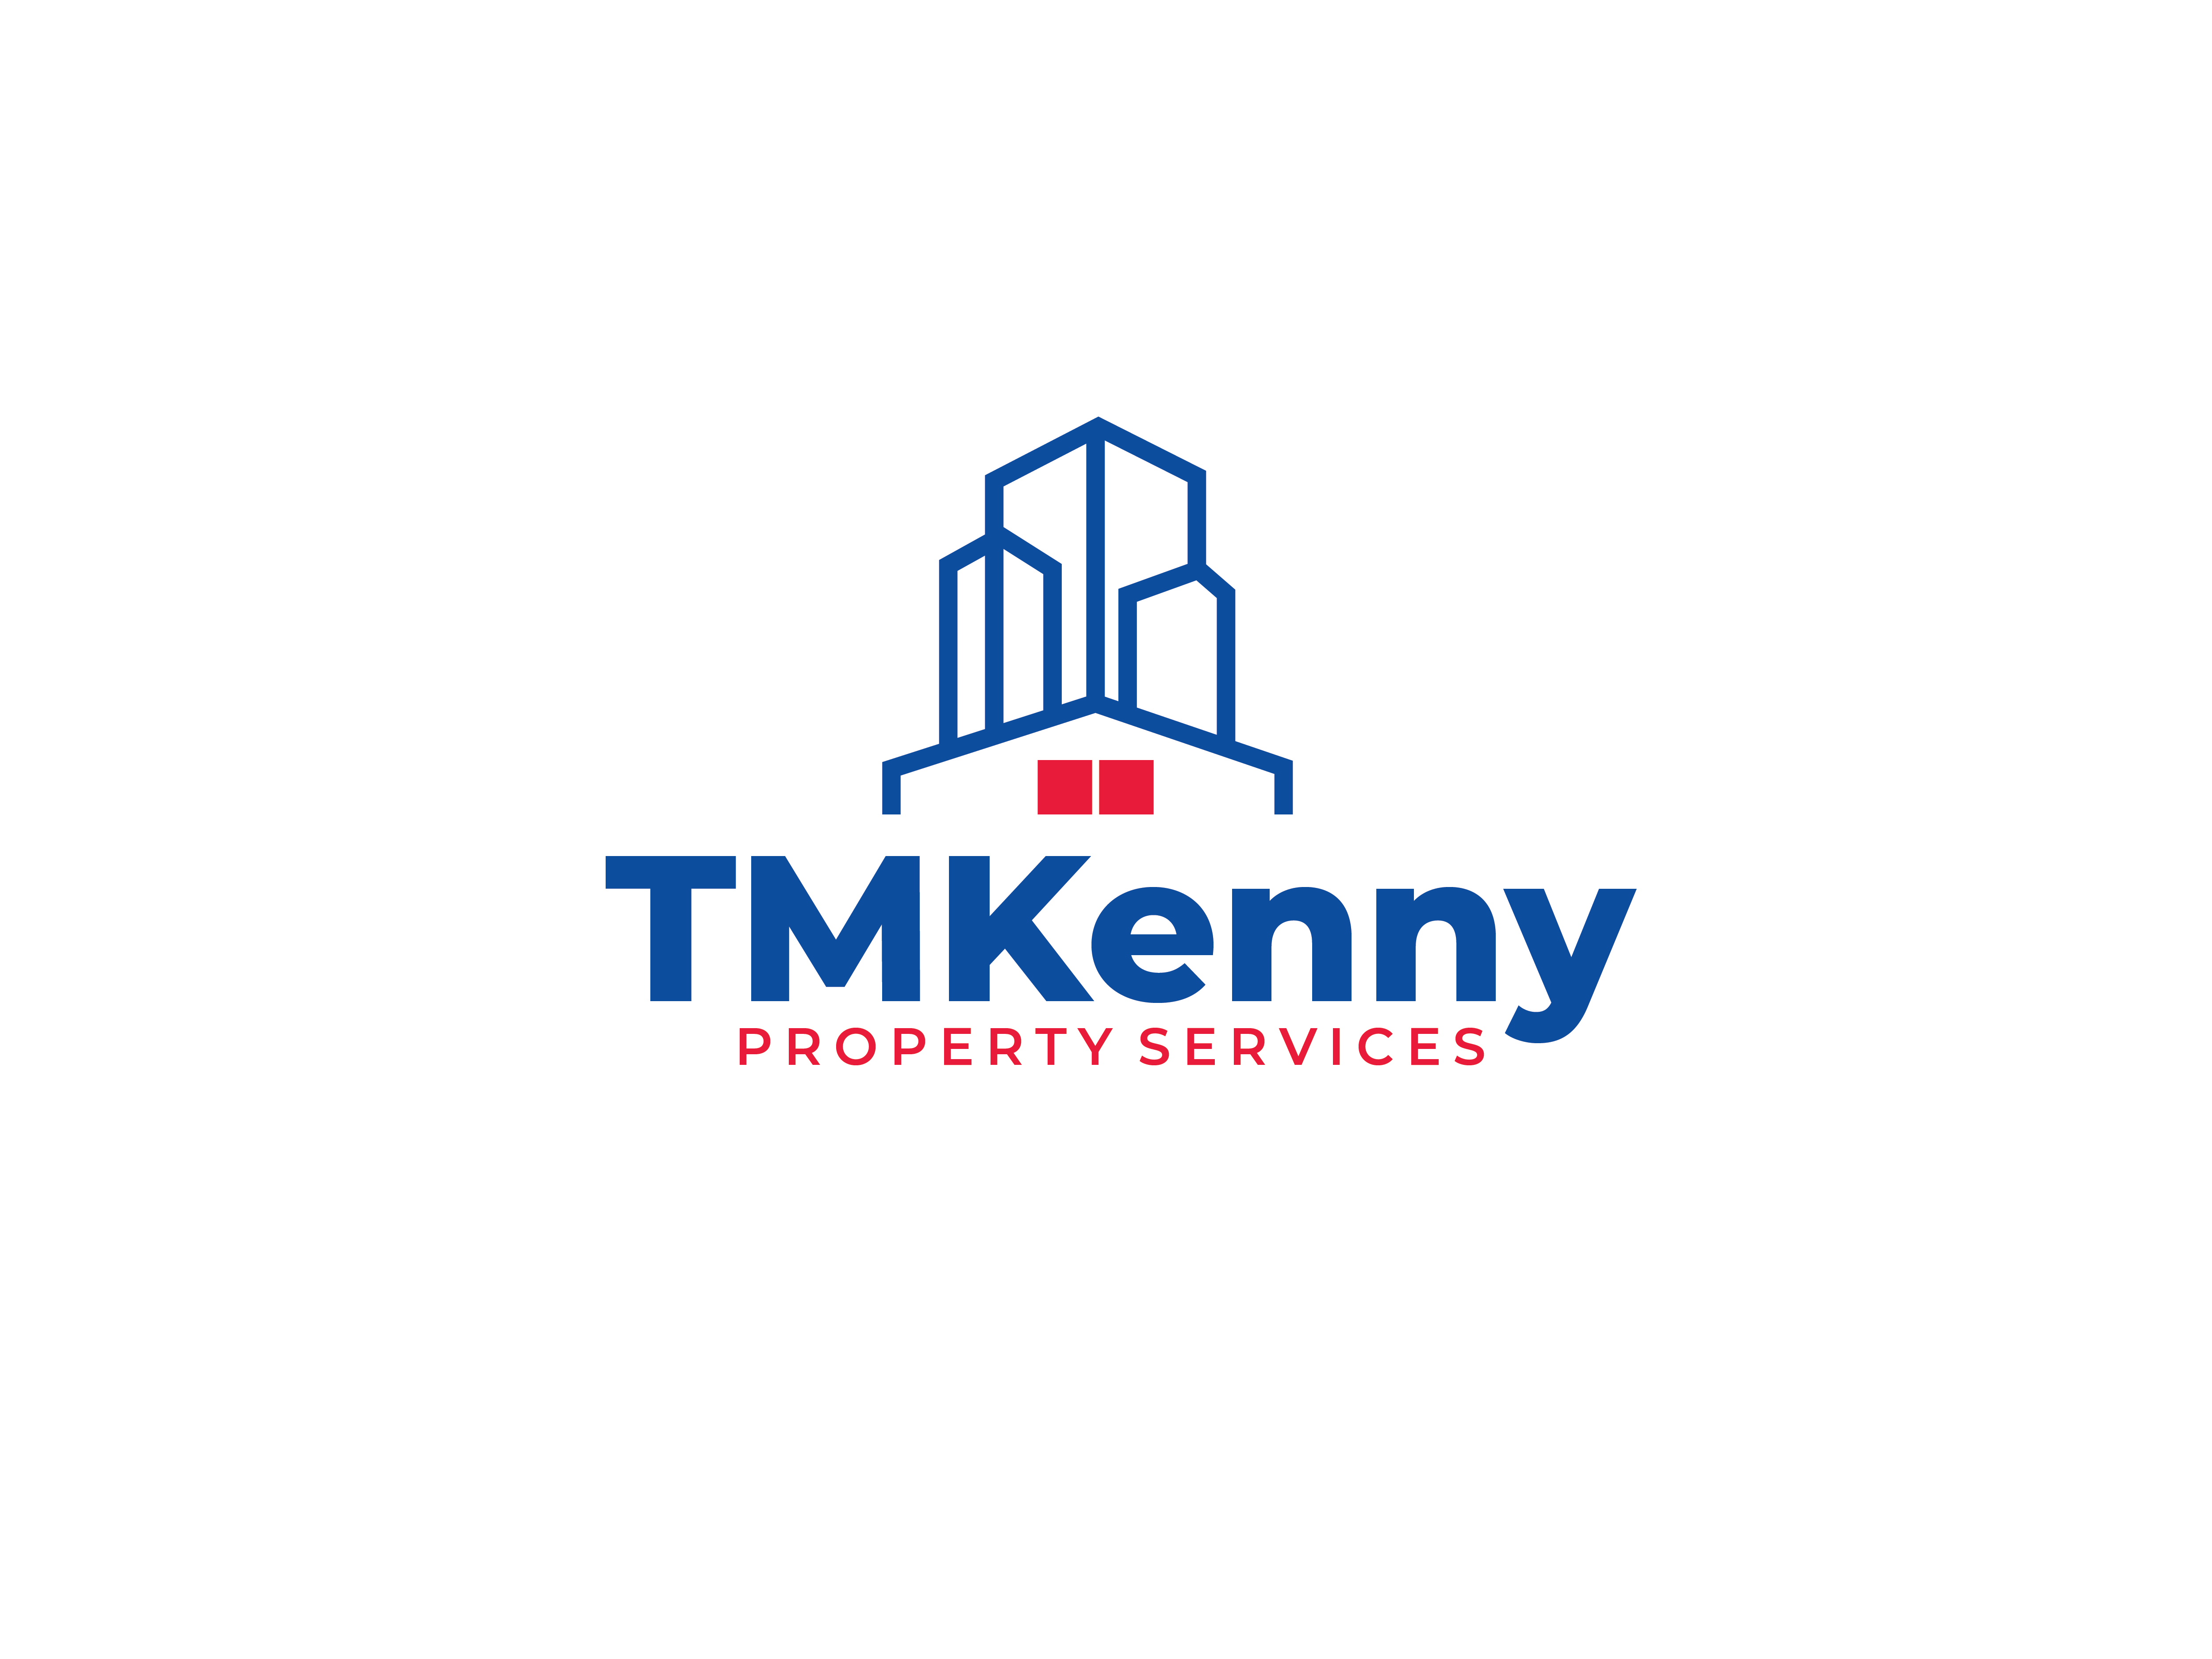 TMKenny Property Services LLC